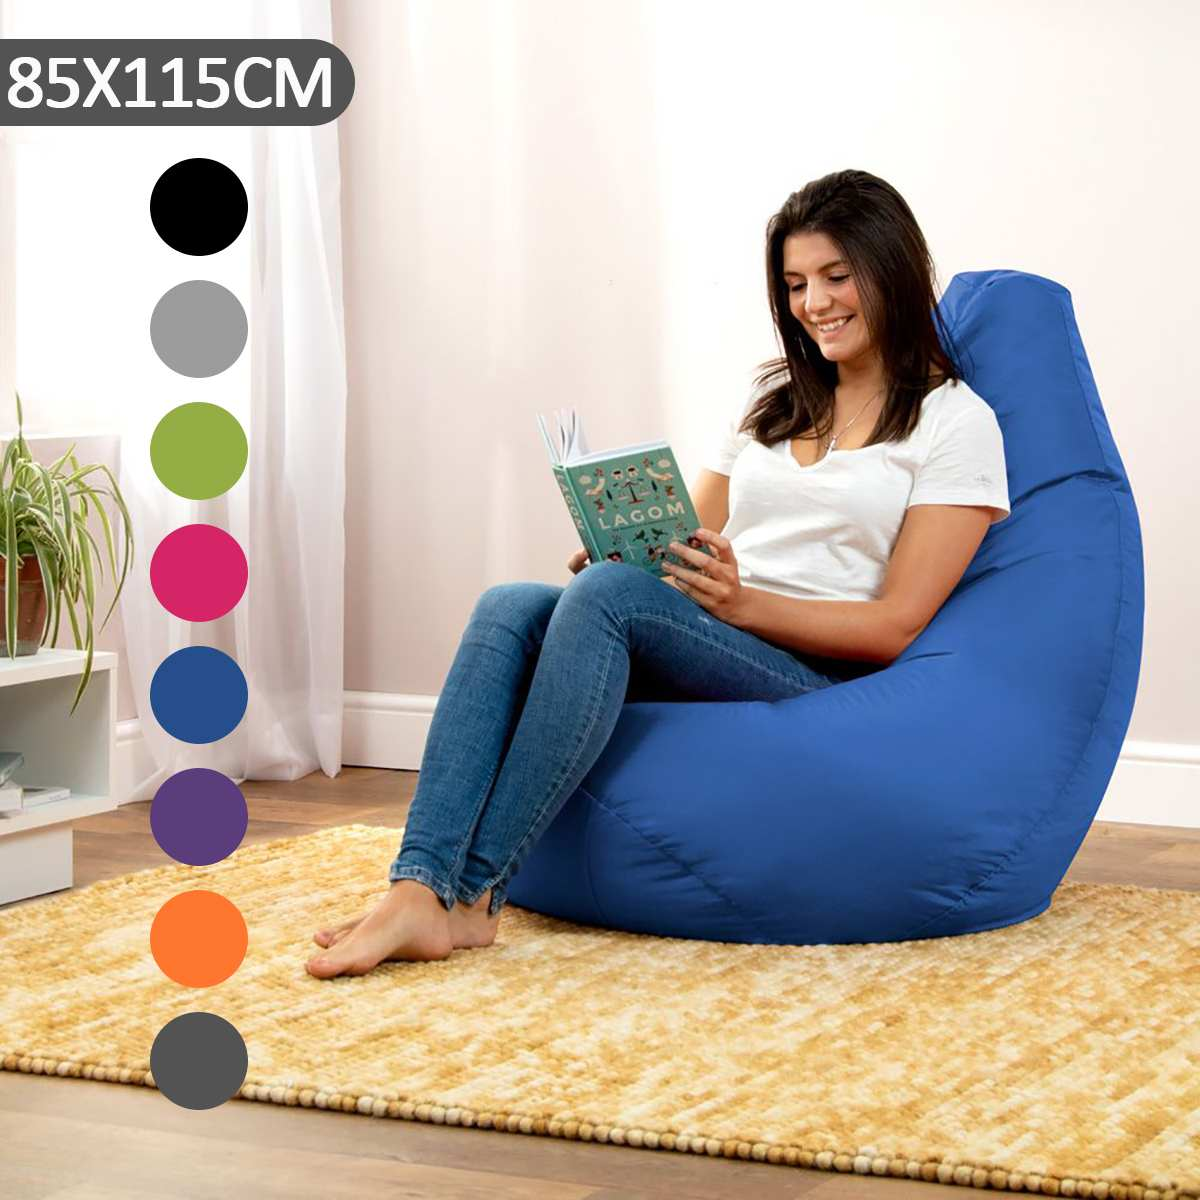 Large Bean Bag Sofa Cover Lounger Chair Sofa Ottoman Seat Living Room Furniture Without Filler Beanbag Bed Pouf Puff Couch TatamLarge Bean Bag Sofa Cover Lounger Chair Sofa Ottoman Seat Living Room Furniture Without Filler Beanbag Bed Pouf Puff Couch Tatam